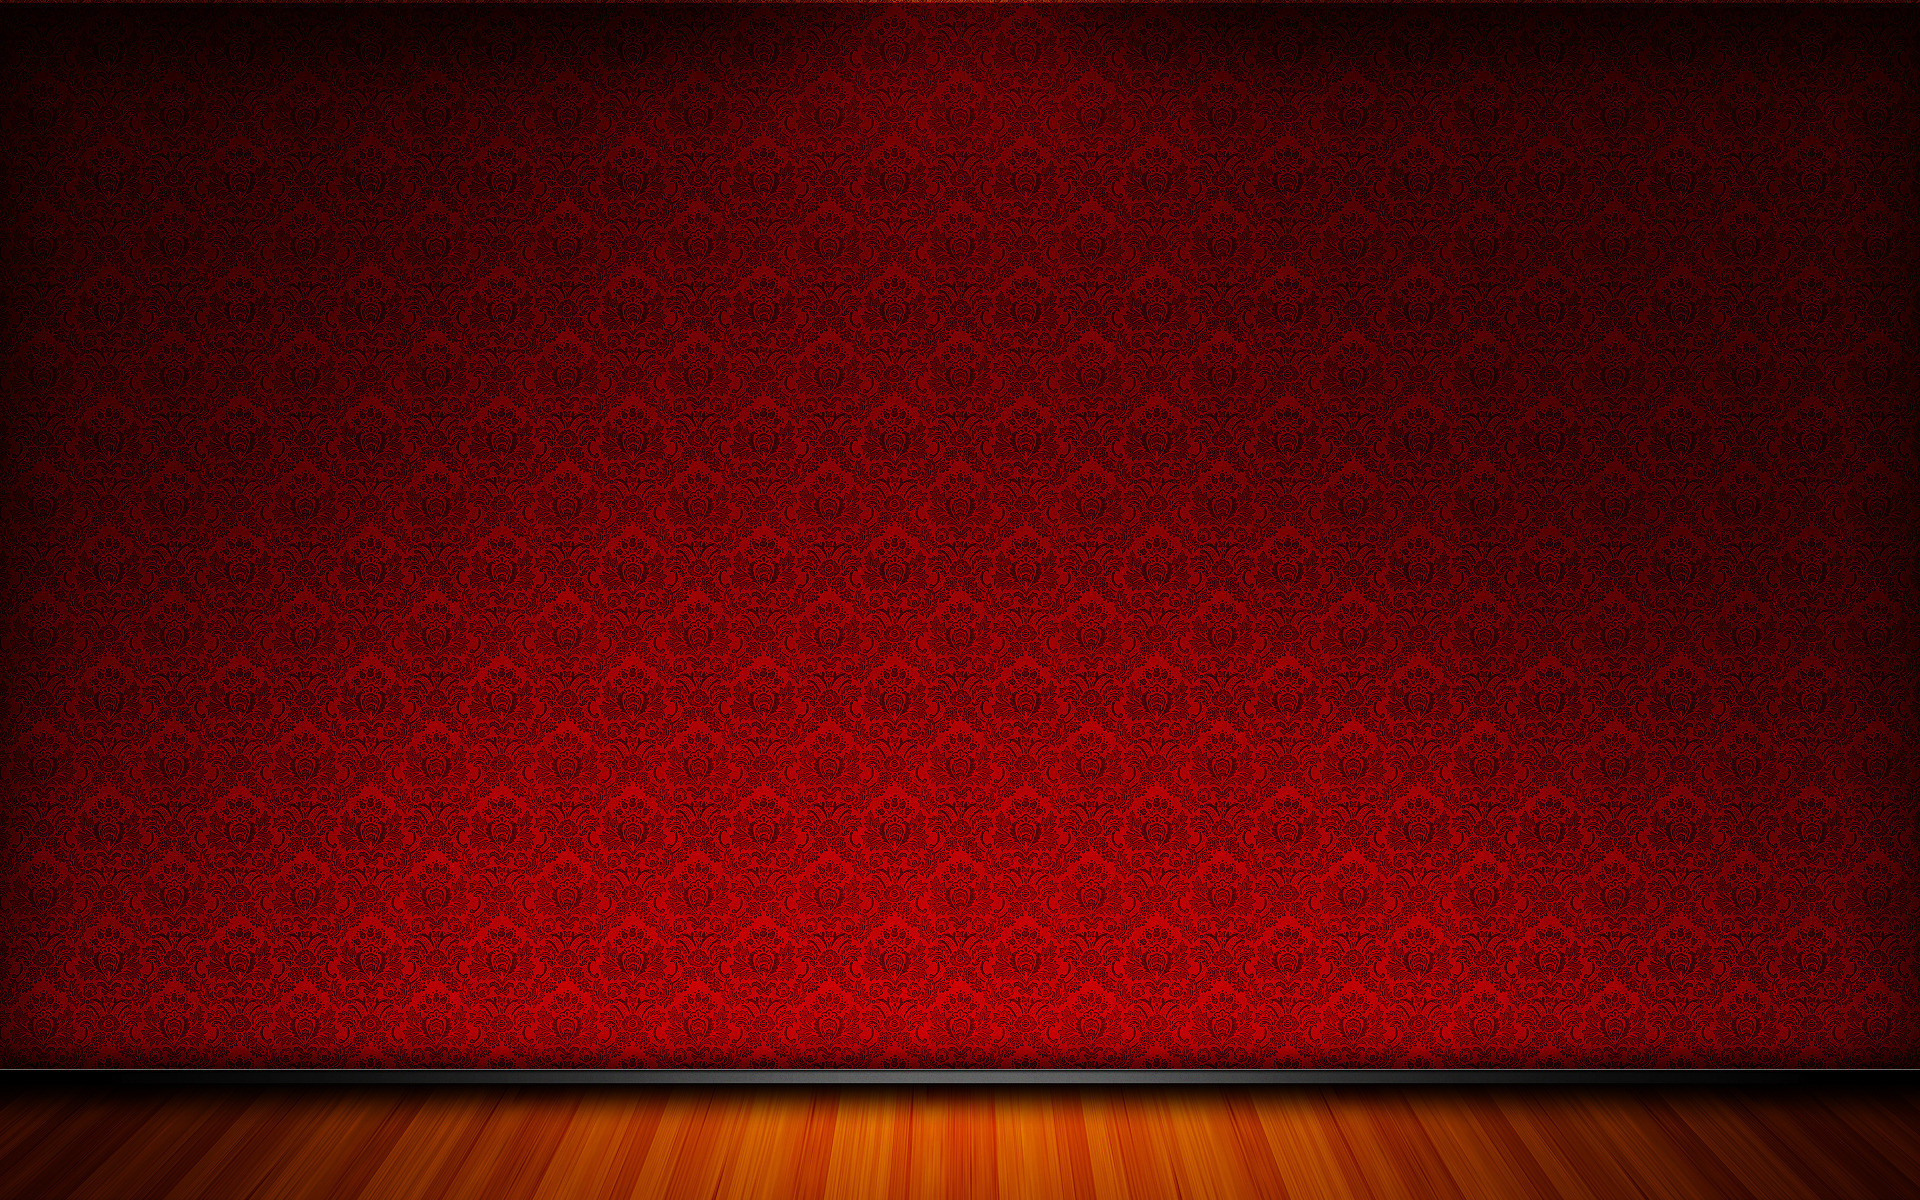 1920x1200 Red background wallpapers galaxy Black Background and some PPT ... -  Original Fit